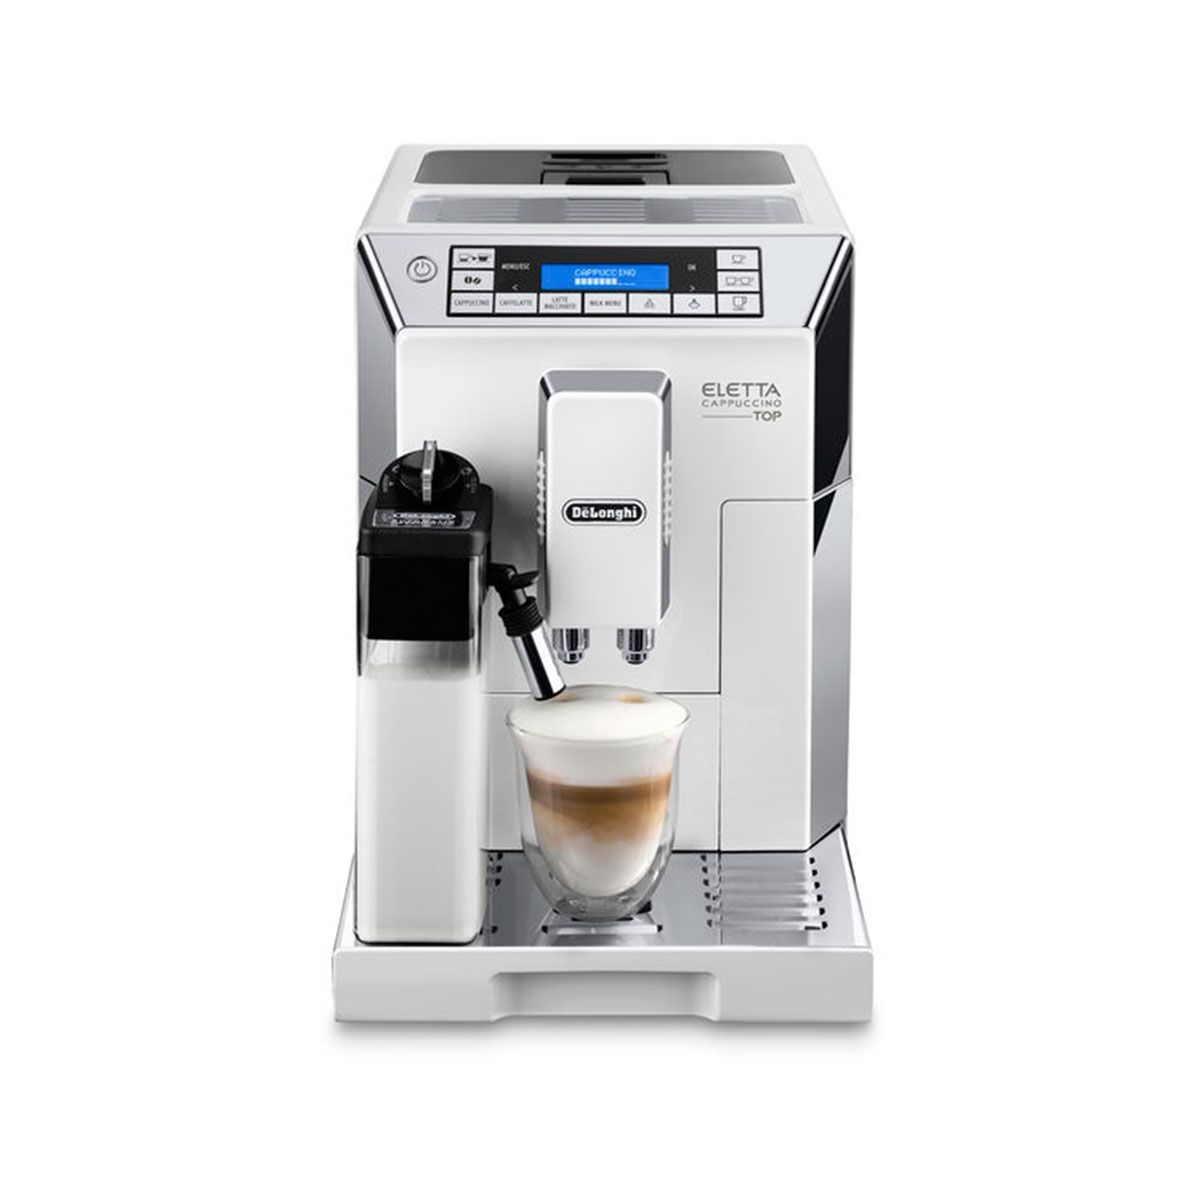 Cucina The Pizzeria Otley Cappuccino Machine For Business Oxynux Org